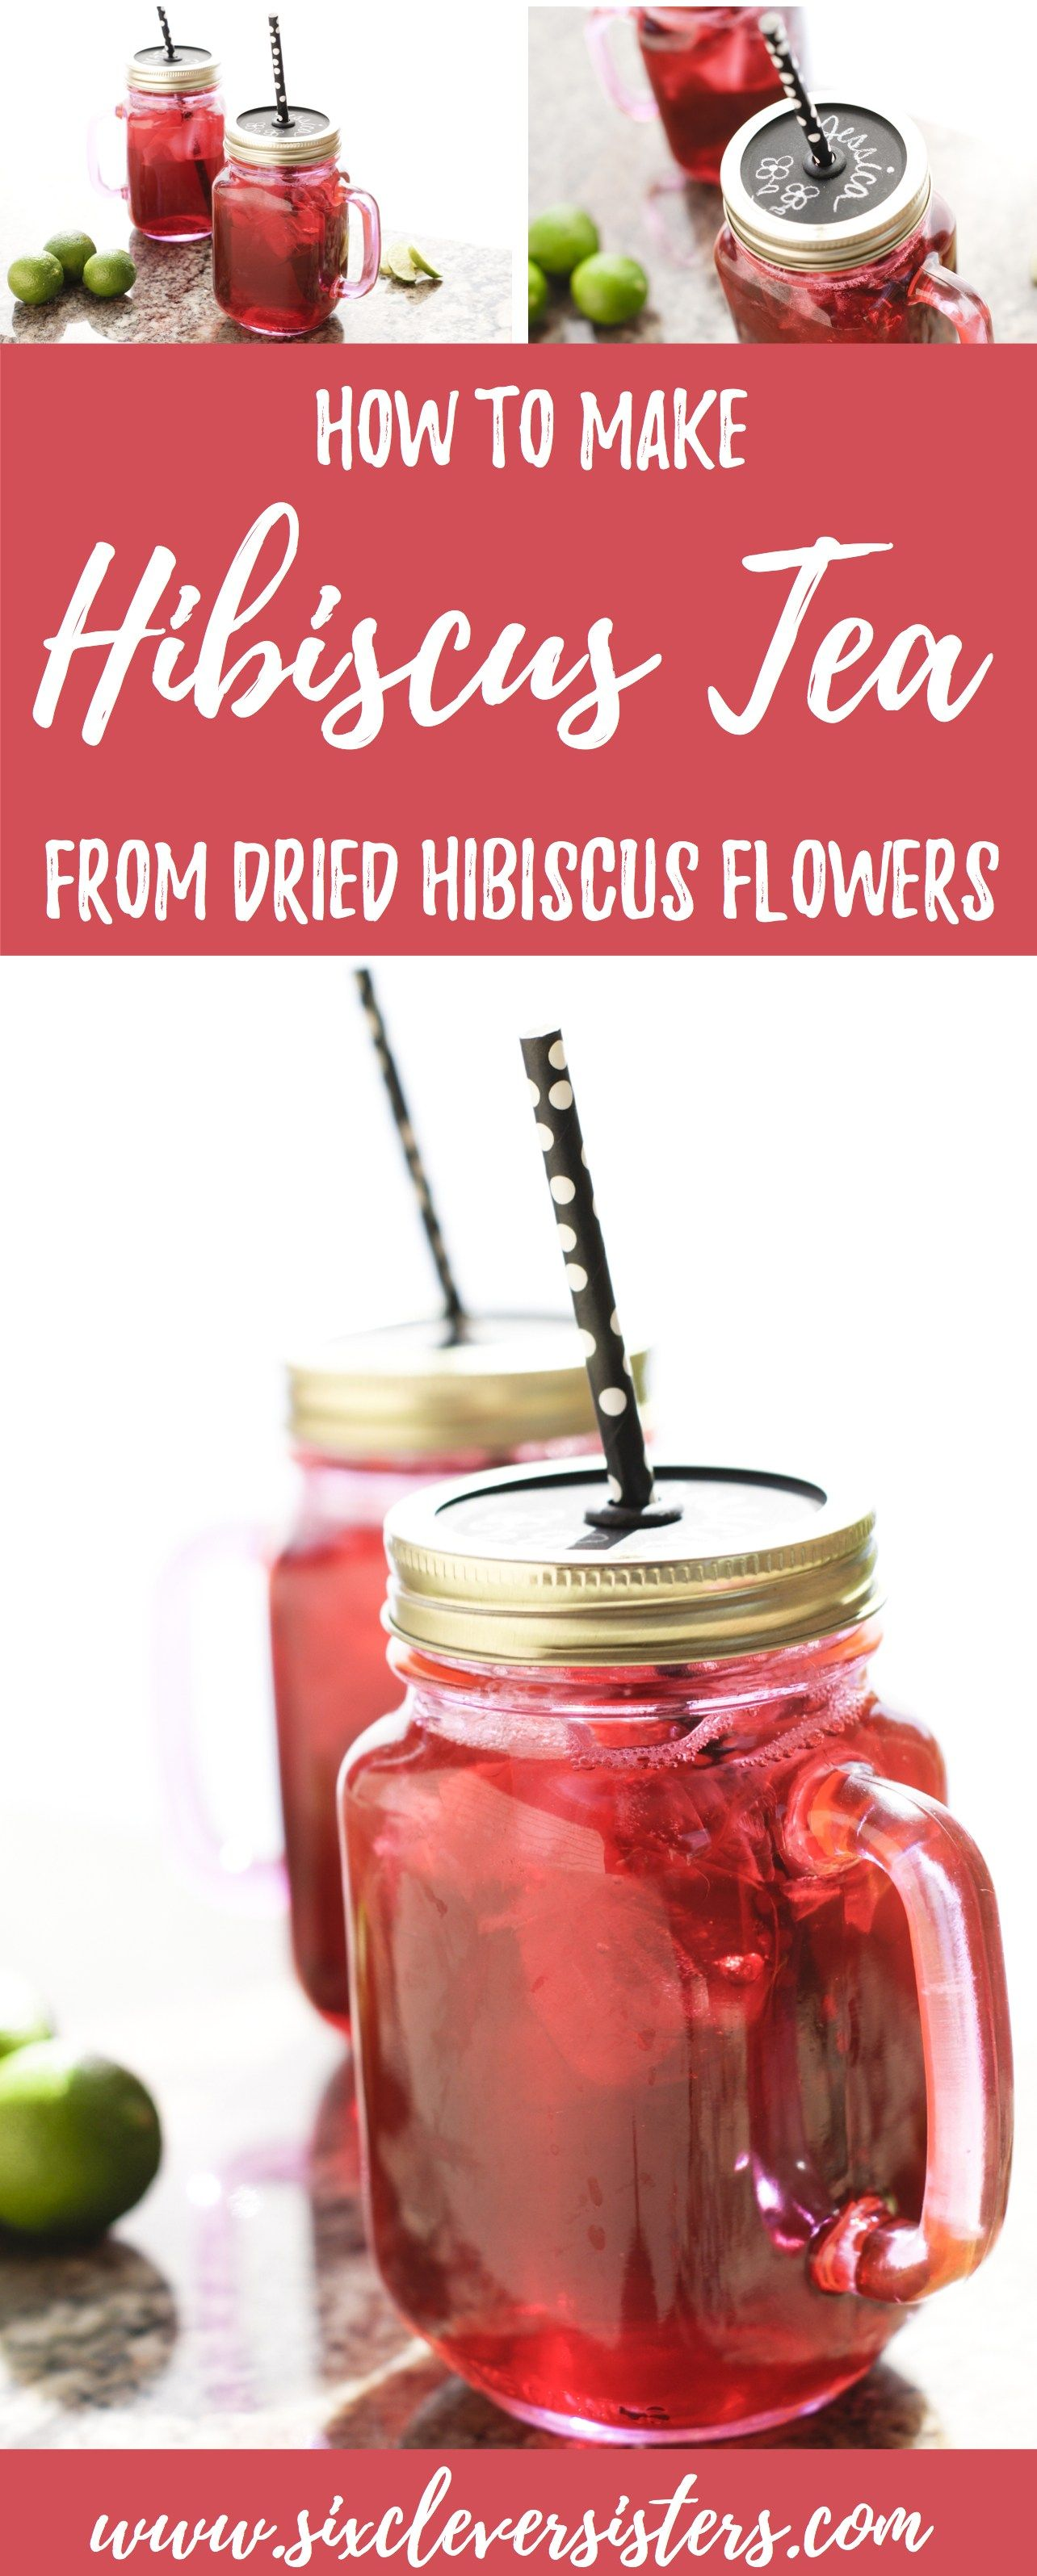 Brewing hibiscus tea from dried hibiscus flowers recipe brewing hibiscus tea from dried hibiscus flowers recipe pinterest hibiscus tea hibiscus flowers and tea recipes izmirmasajfo